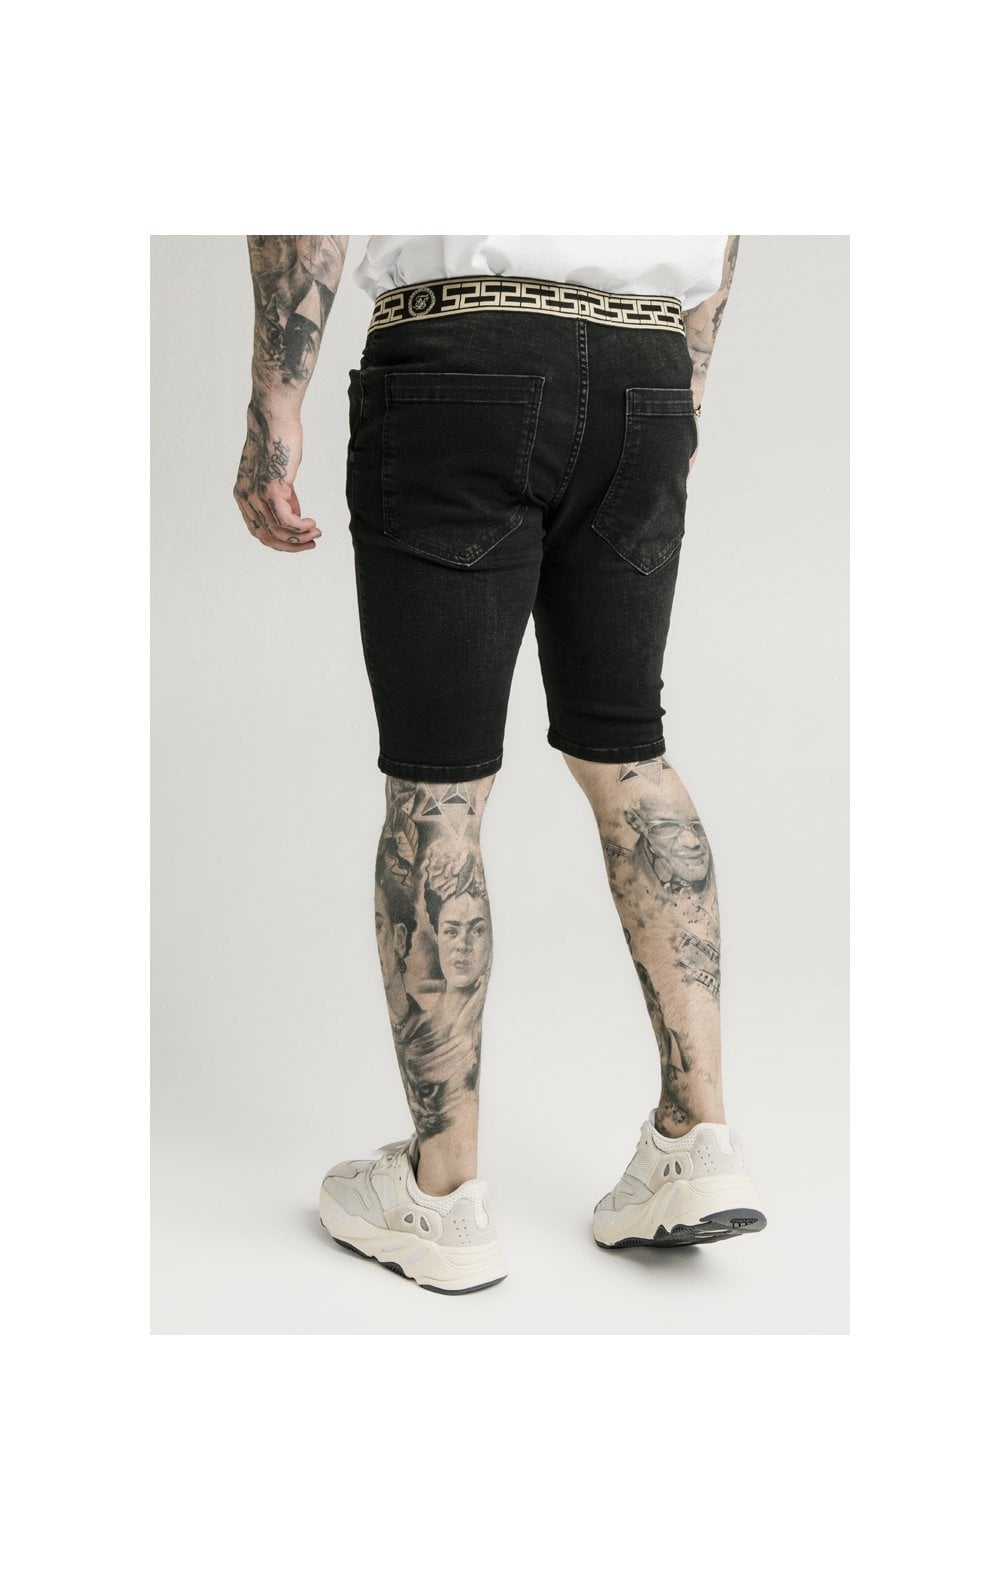 SikSilk Elasticated Waist Distressed Denim Shorts – Black (2)